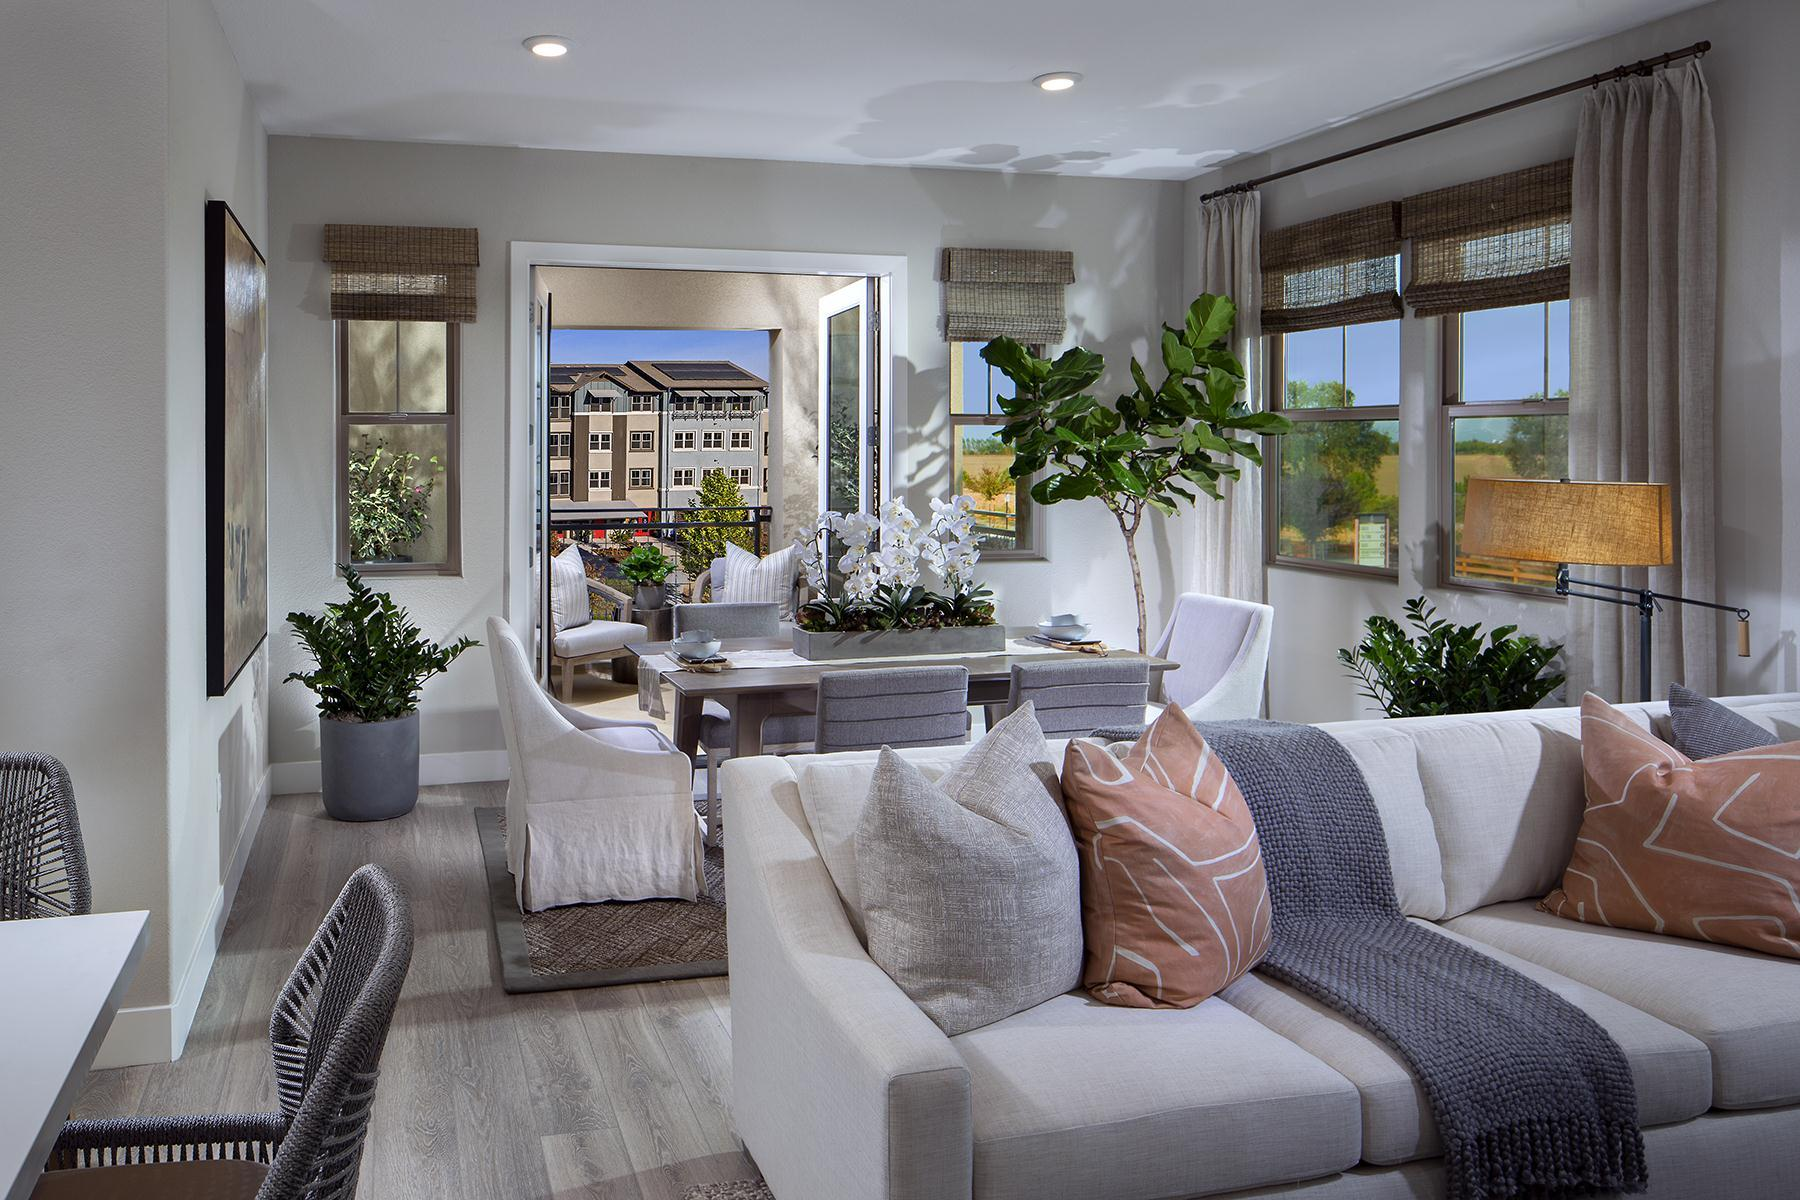 'Gala- The Cannery' by The New Home Company NorCal in Sacramento